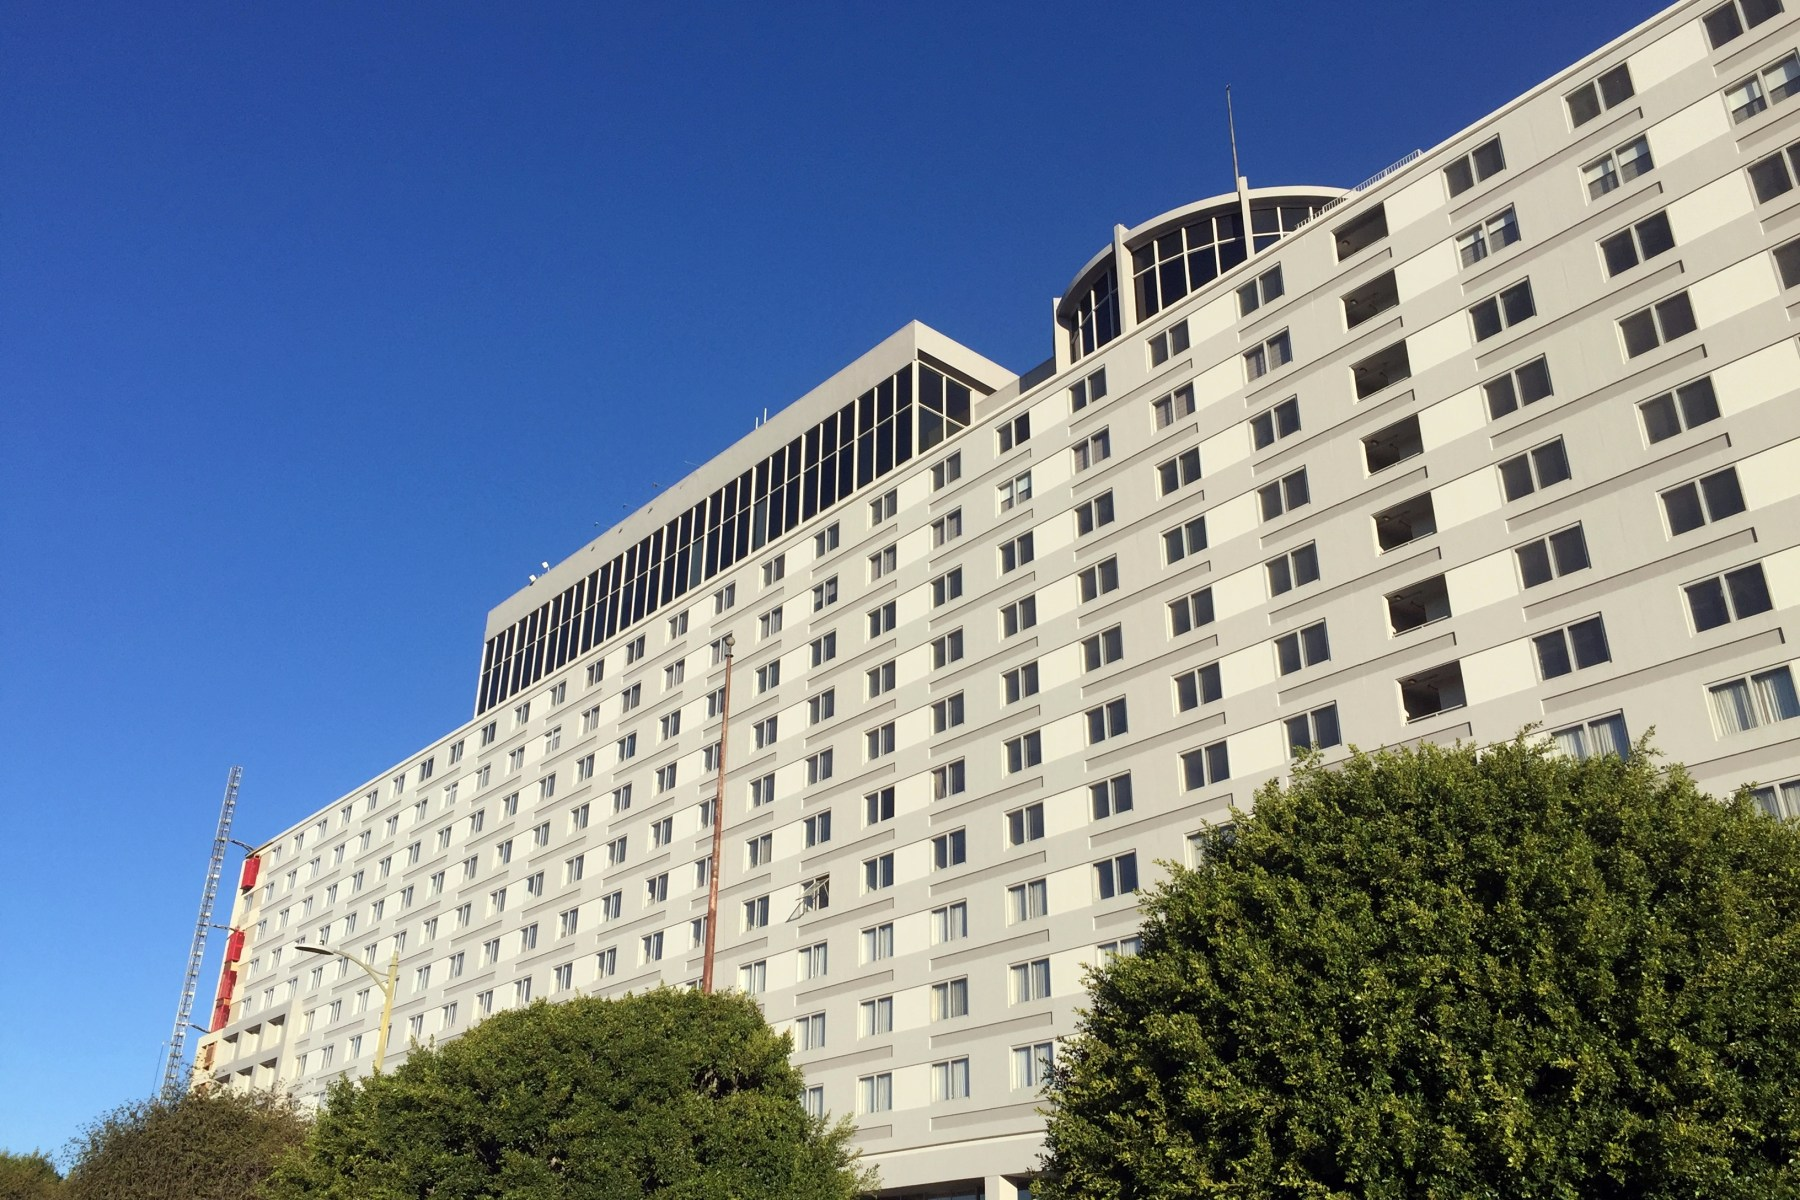 Hotels Los Angeles Hotels Outlet Return Policy